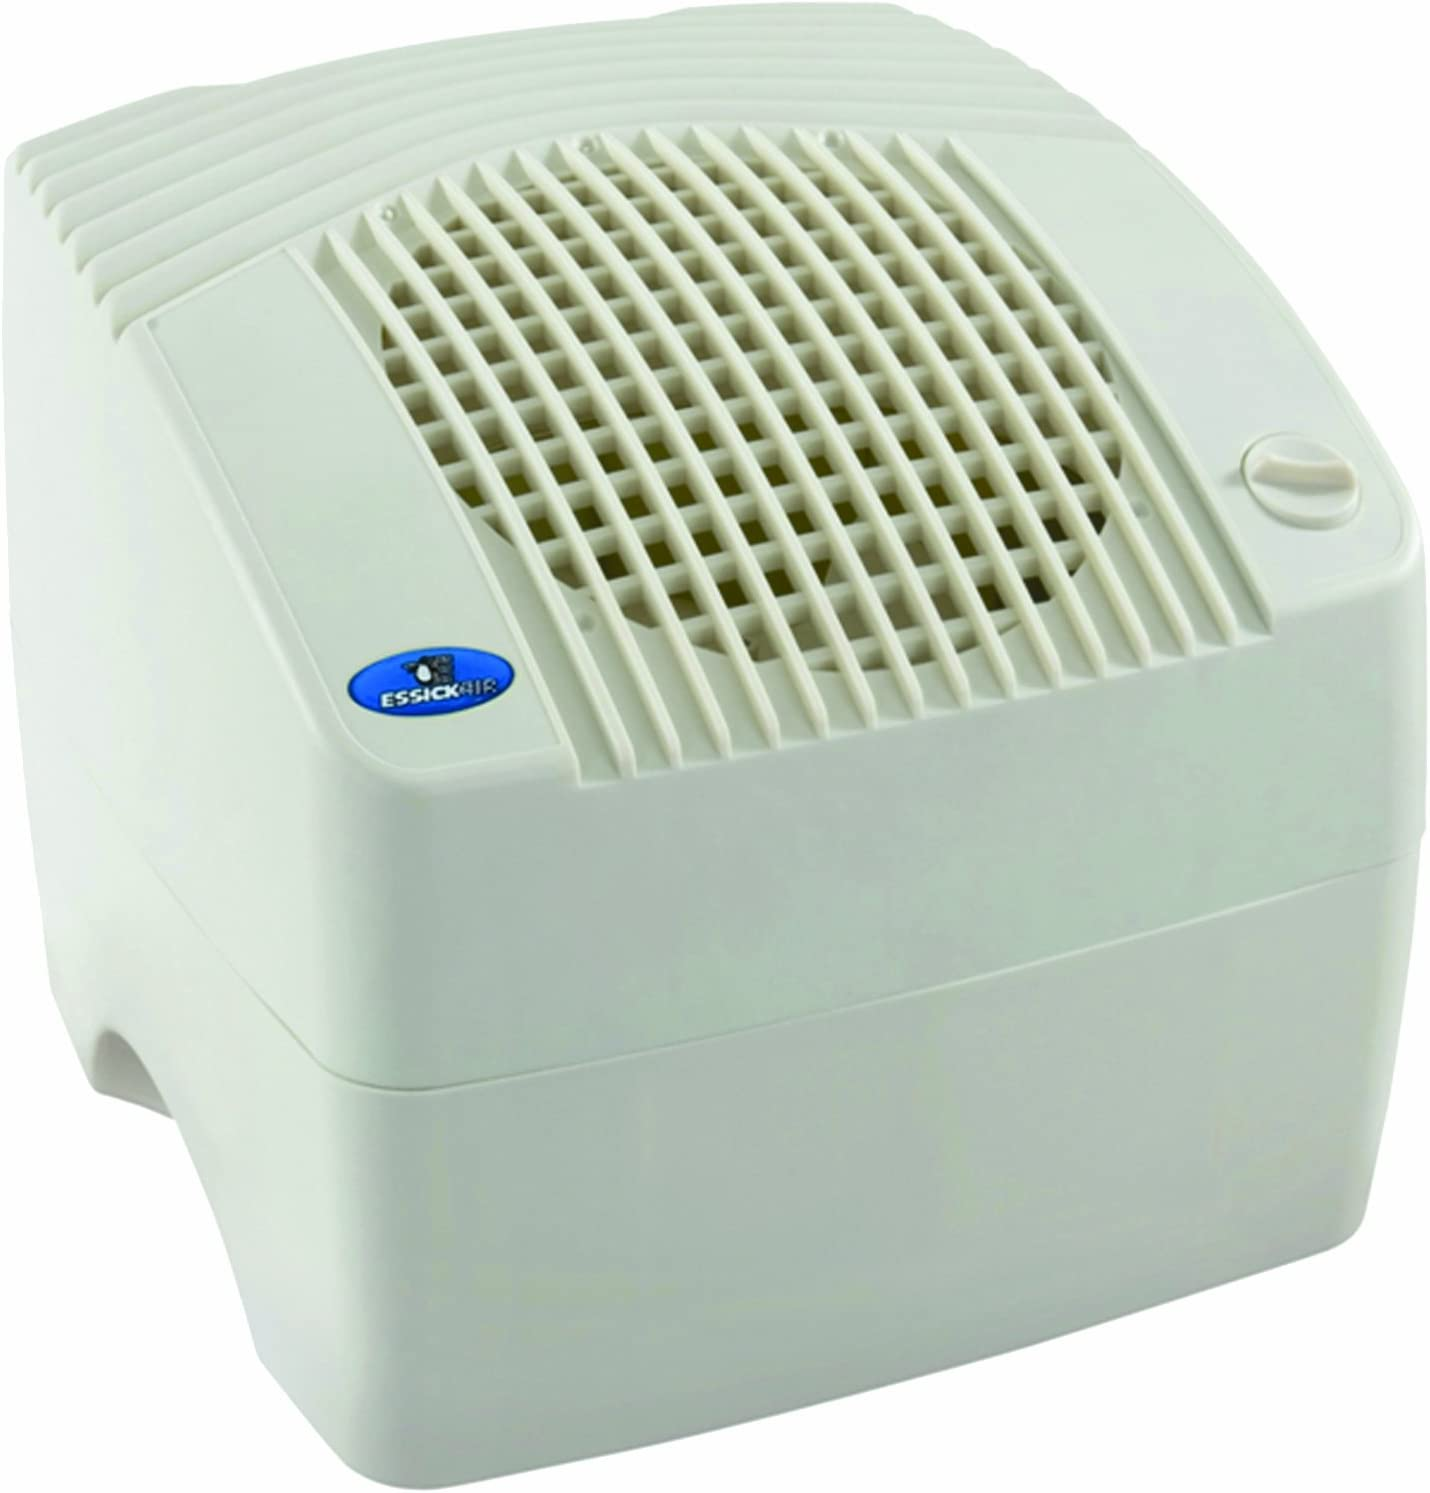 Essick Air E27 000 2Speed Tabletop Humidifier, White